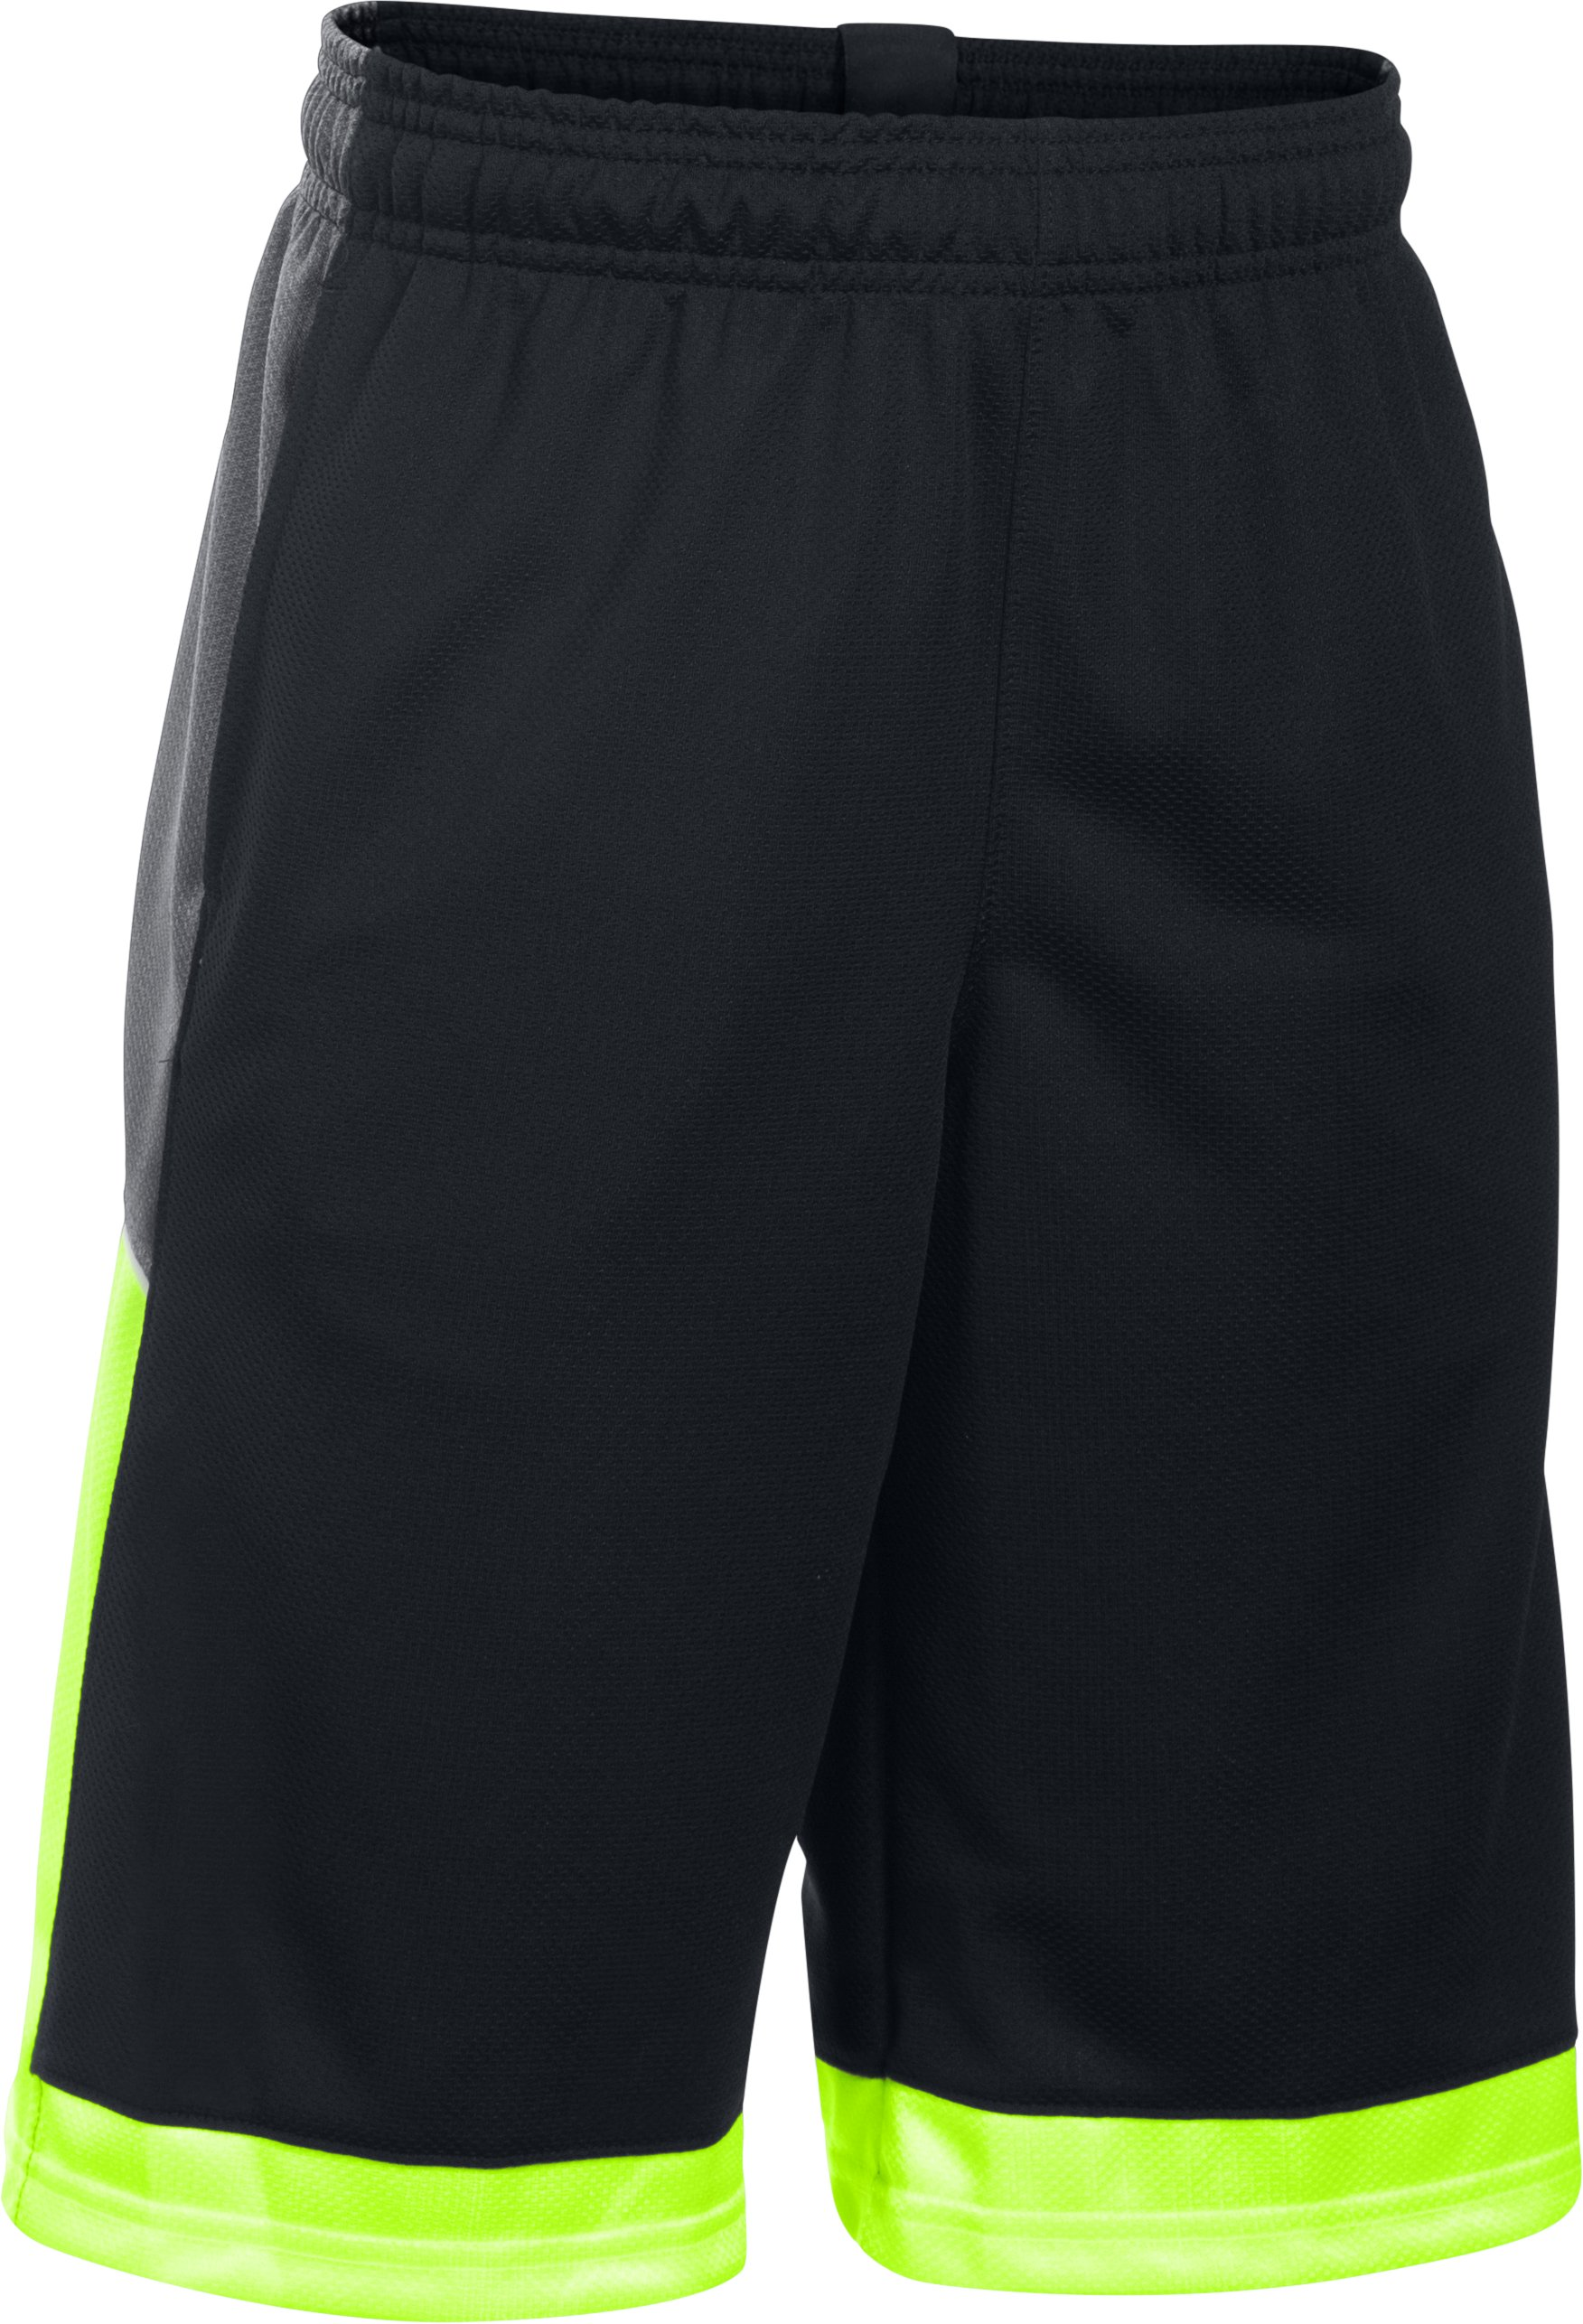 Boys' UA Baseline Basketball Shorts, Black , undefined